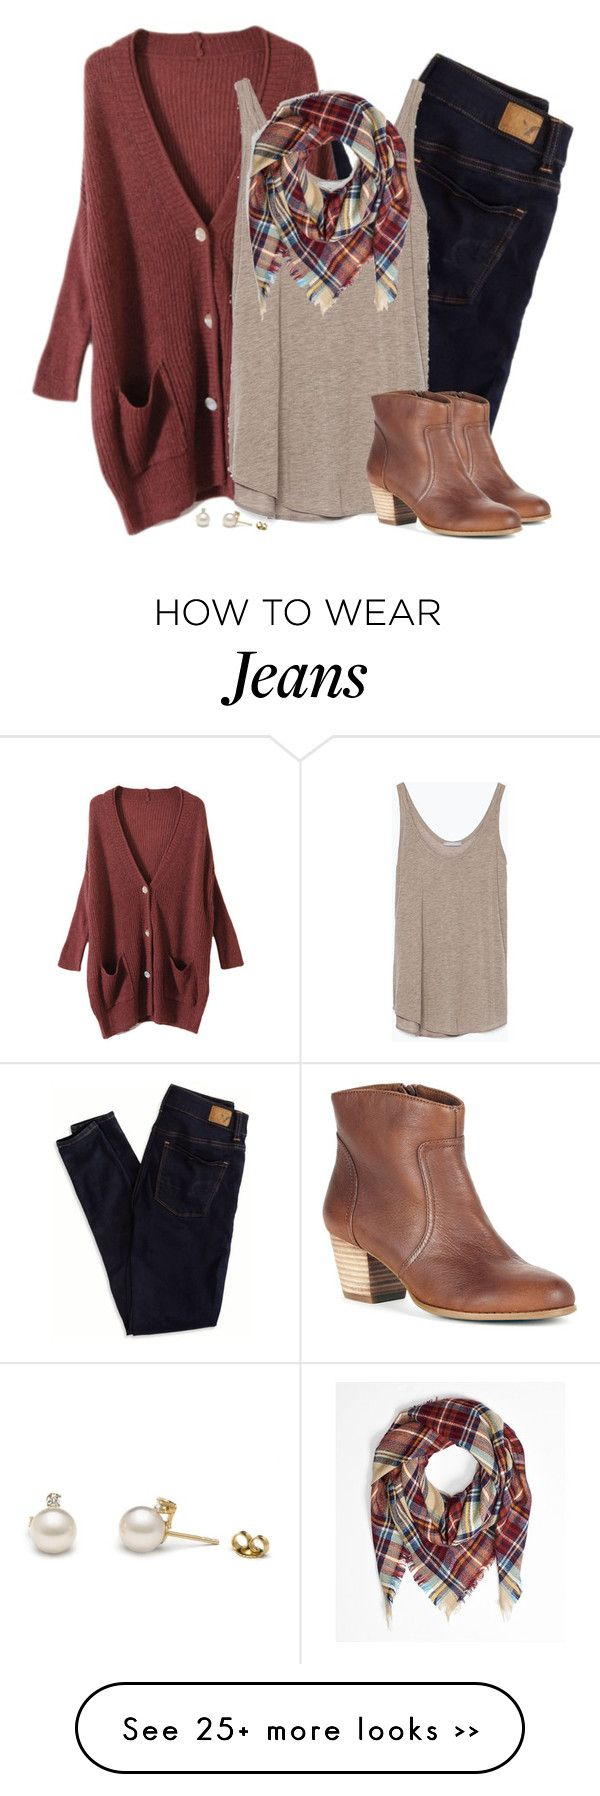 """""""Oversized rust cardigan & plaid blanket scarf"""" by steffiestaffie on Polyvore featuring мода, American Eagle Outfitters, Zara и Sole Society"""